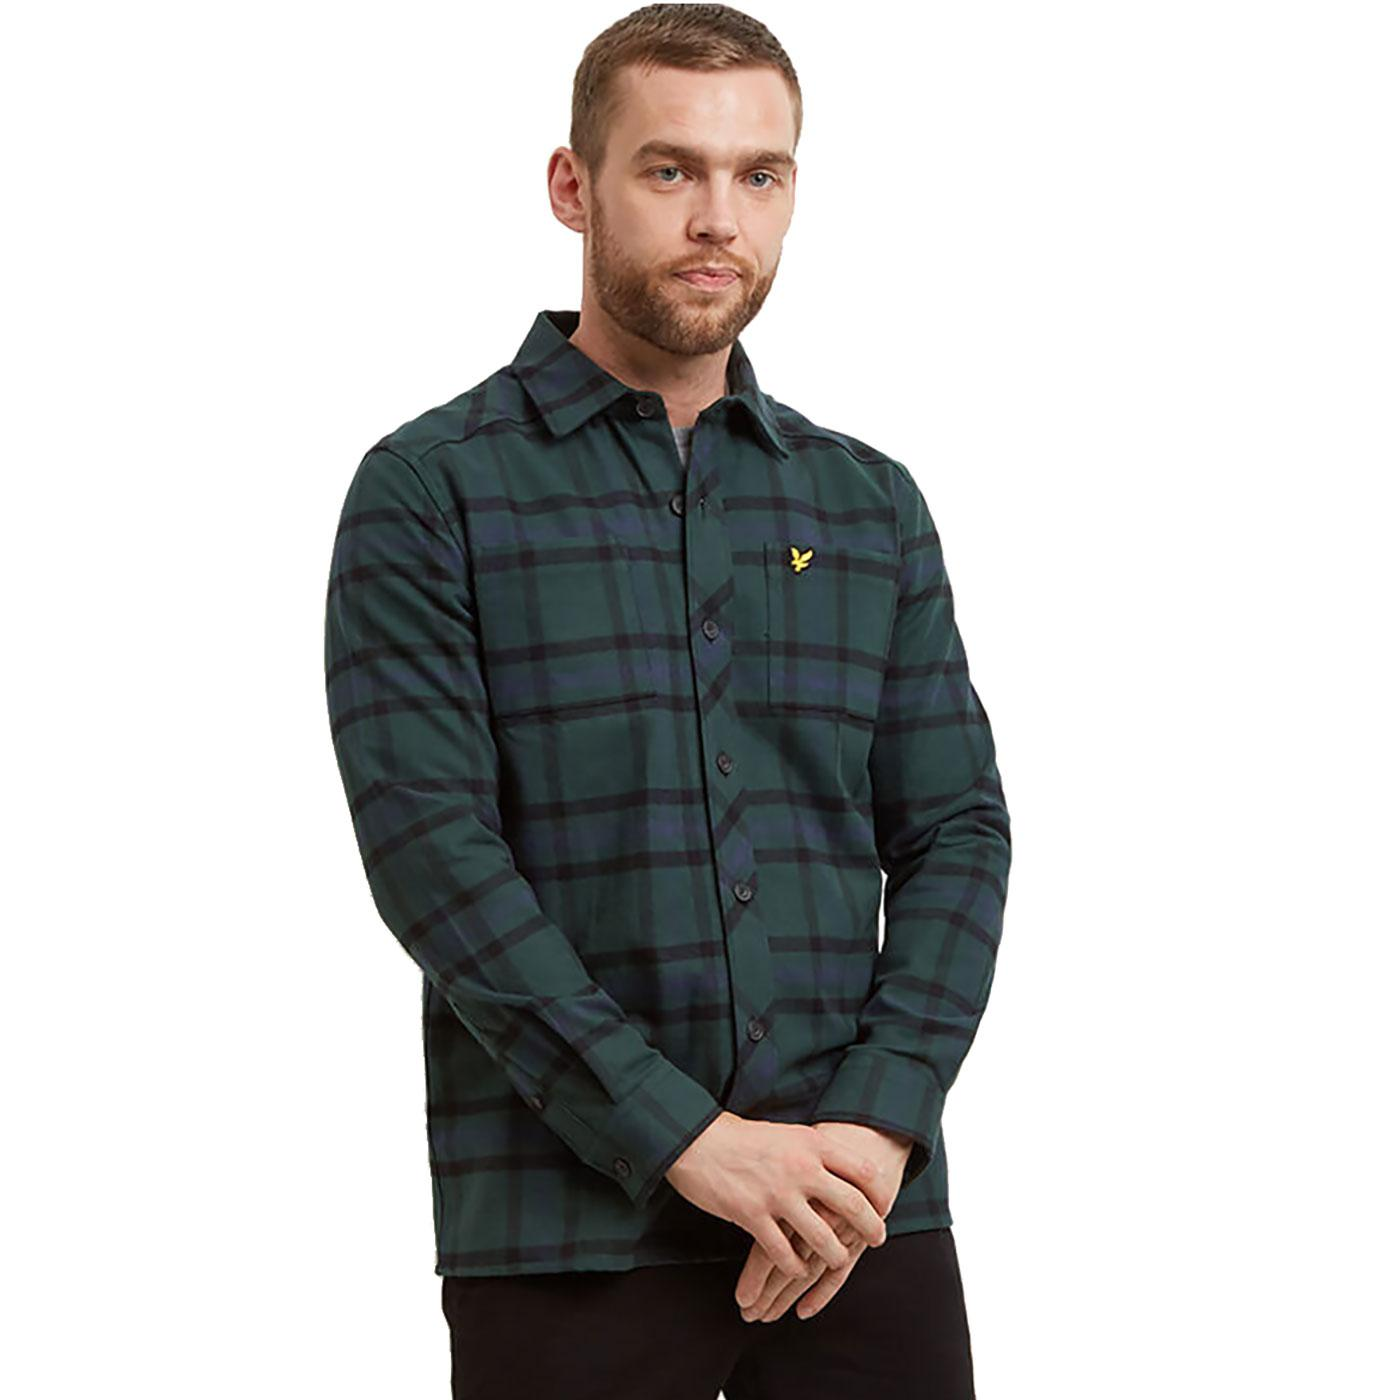 LYLE & SCOTT Retro Indie Tartan Check Overshirt JG